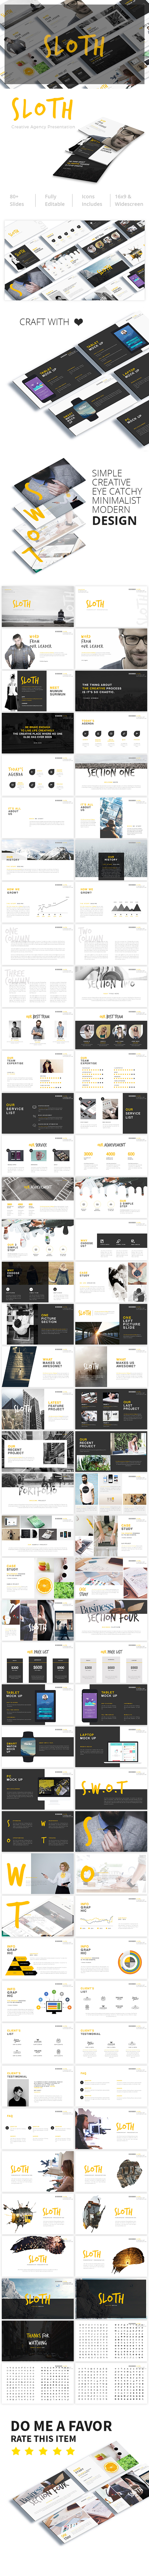 Sloth Creative Agency Powerpoint Template - Creative PowerPoint Templates